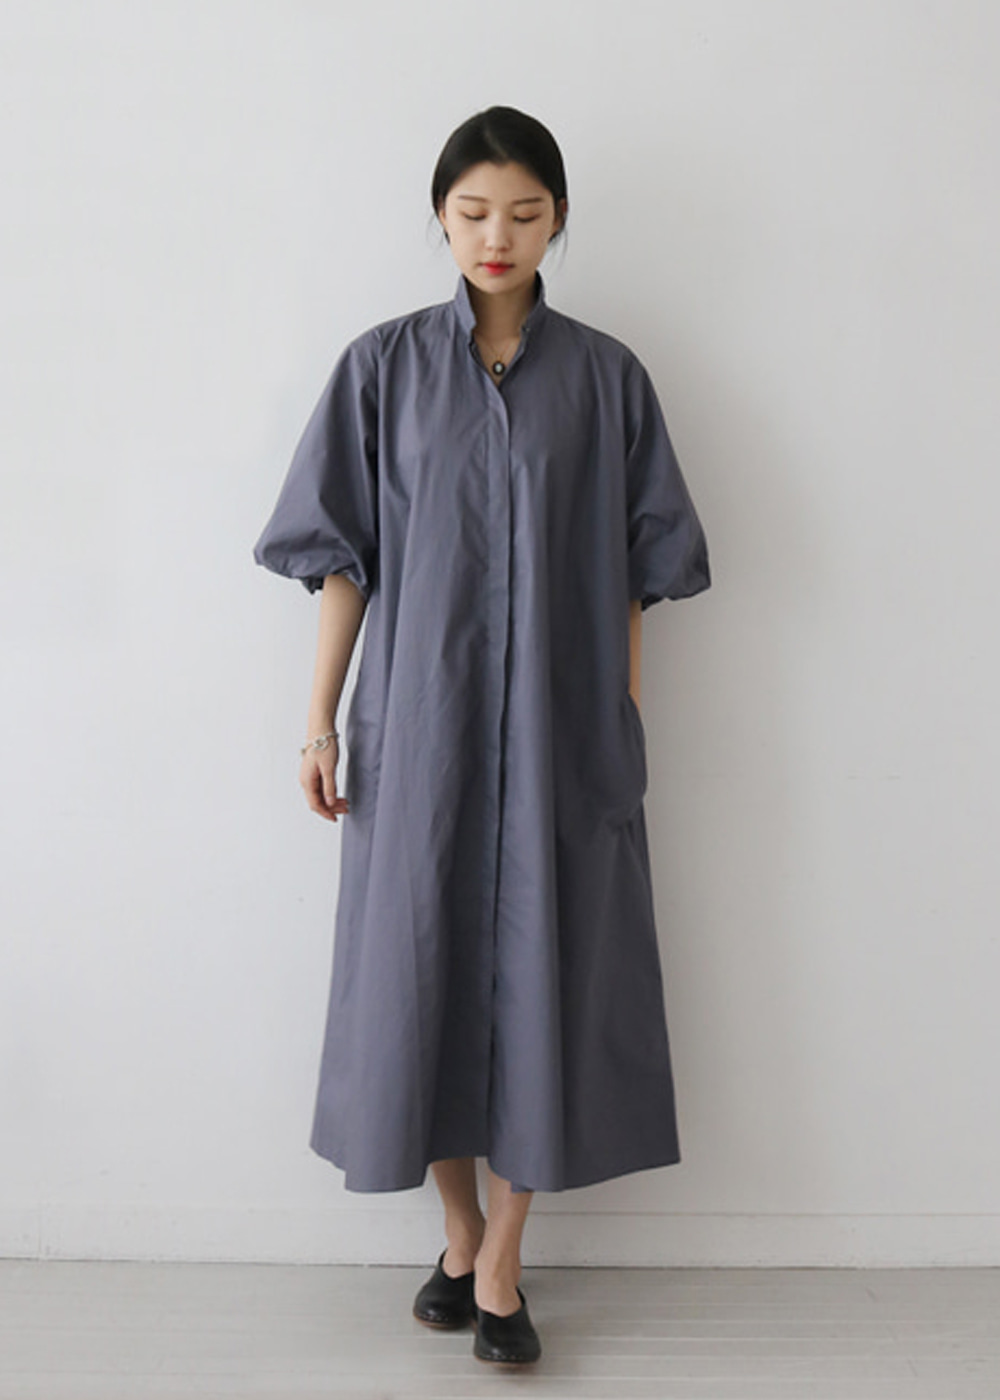 DEPARTURE DRESS WITH PUFF SLEEVES AND SHIRT COLLAR